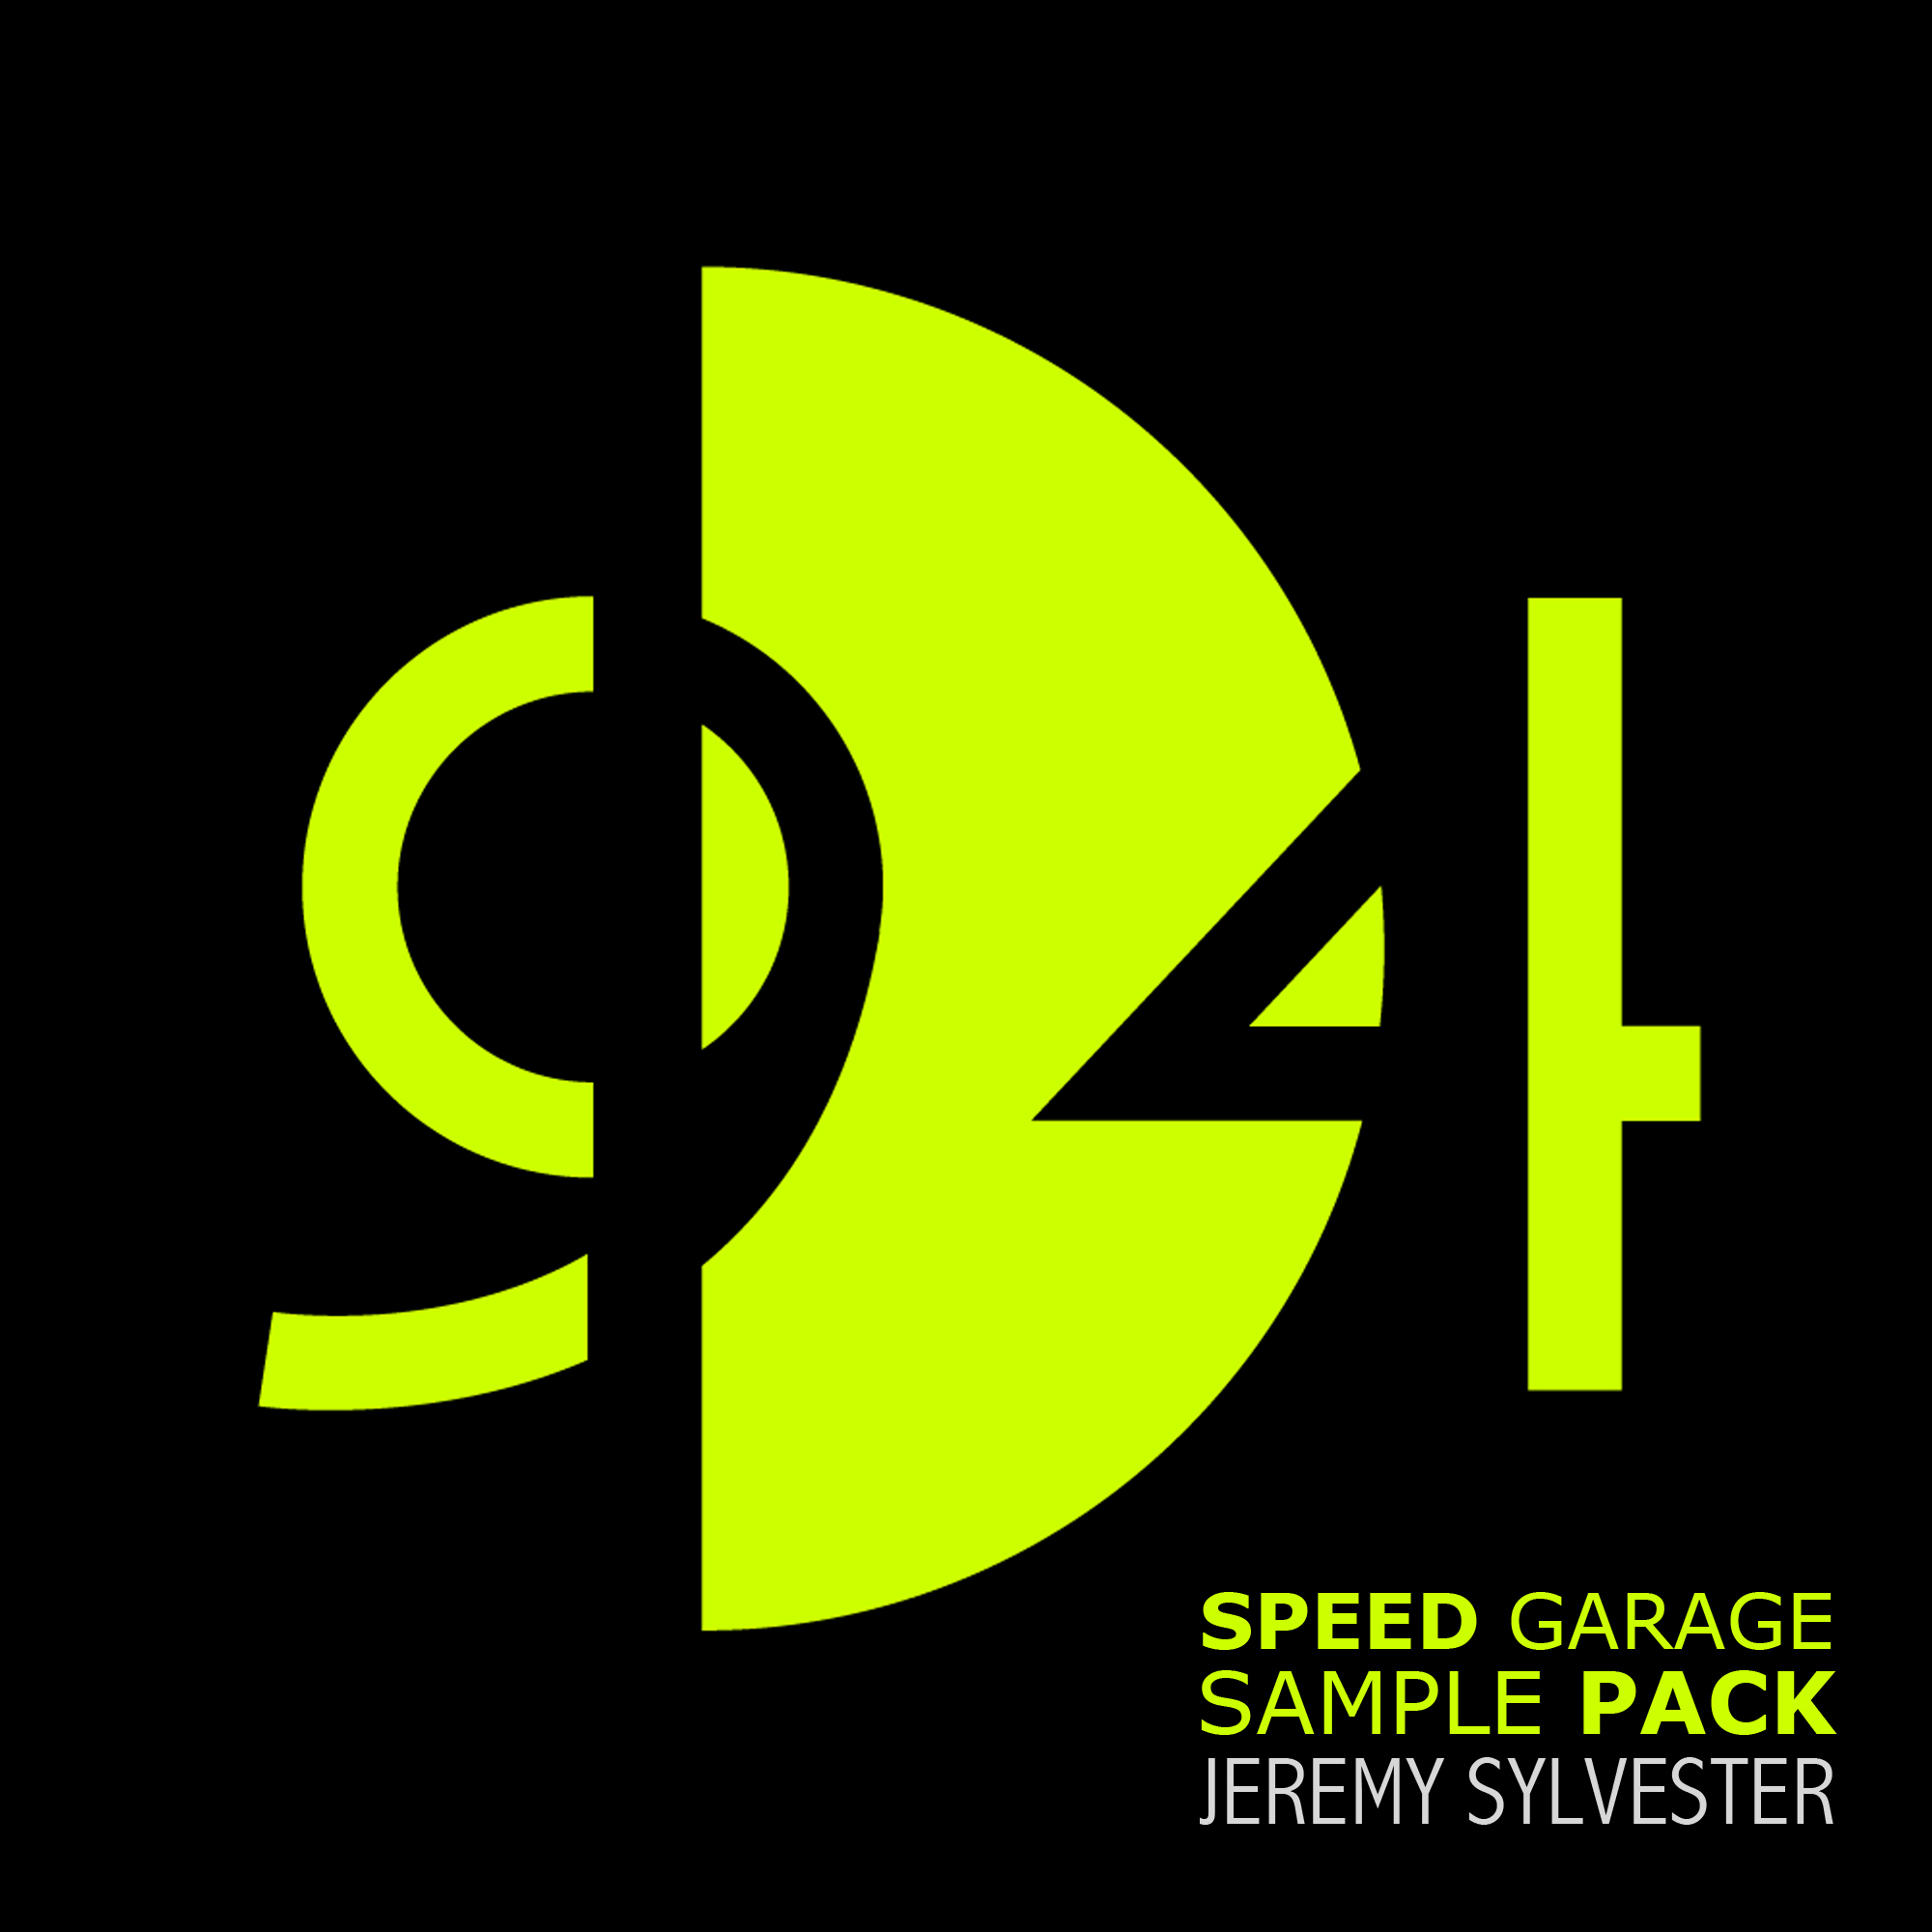 Kvr 9d4 speed garage sample pack by loop wax one shots for Classic house vocal samples